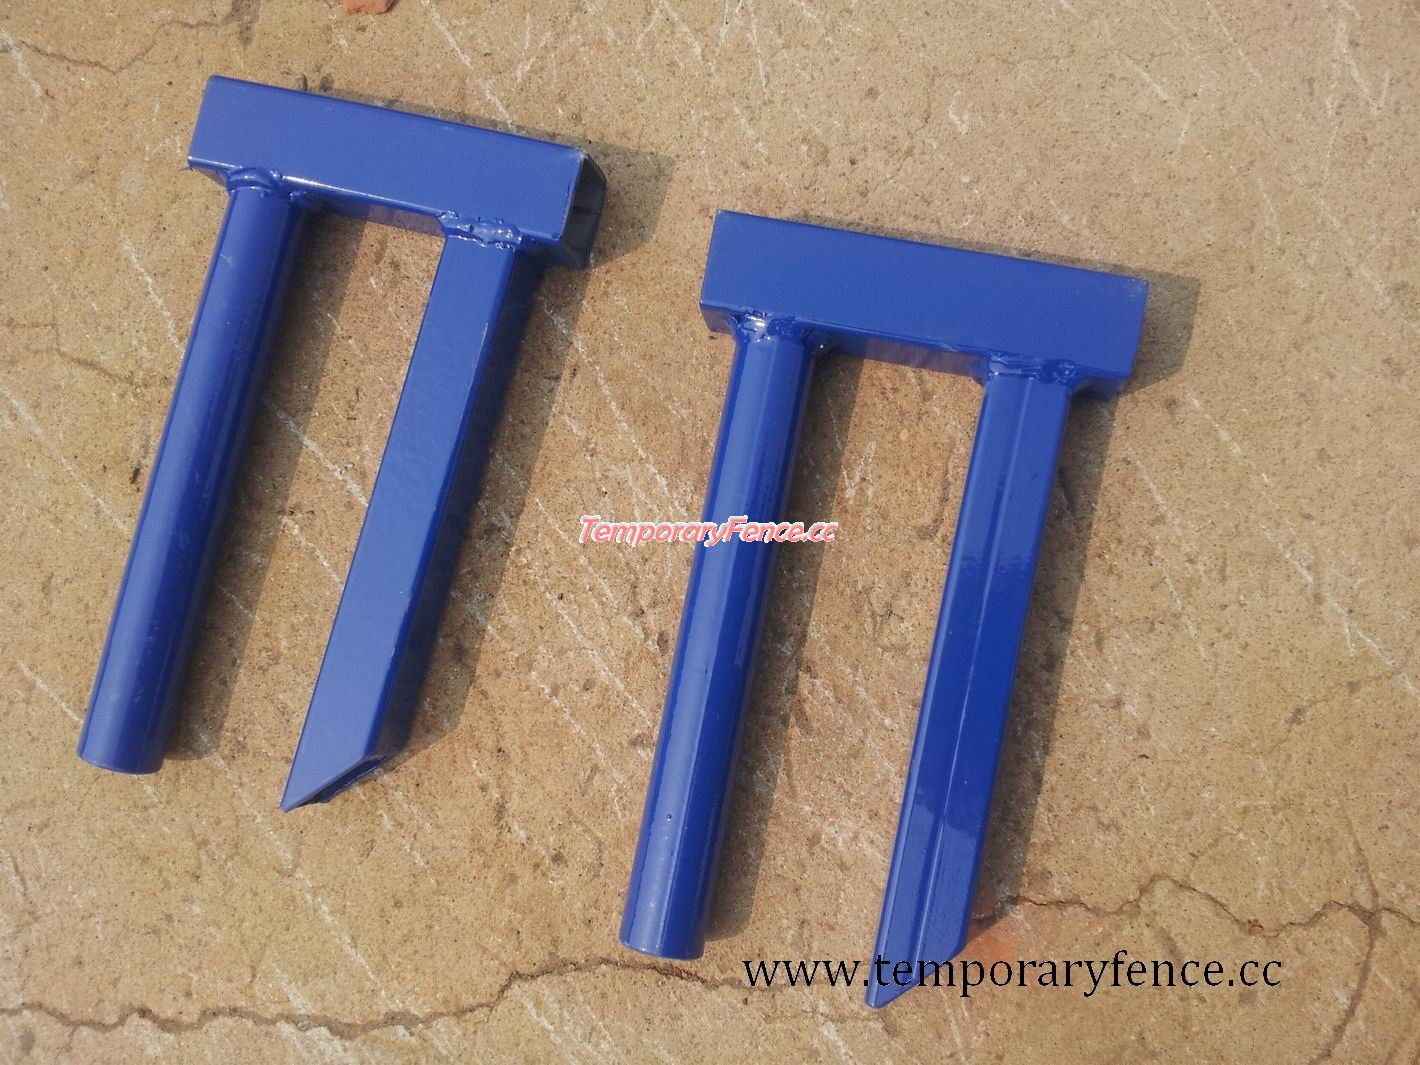 chaoxin temporary fence clamps